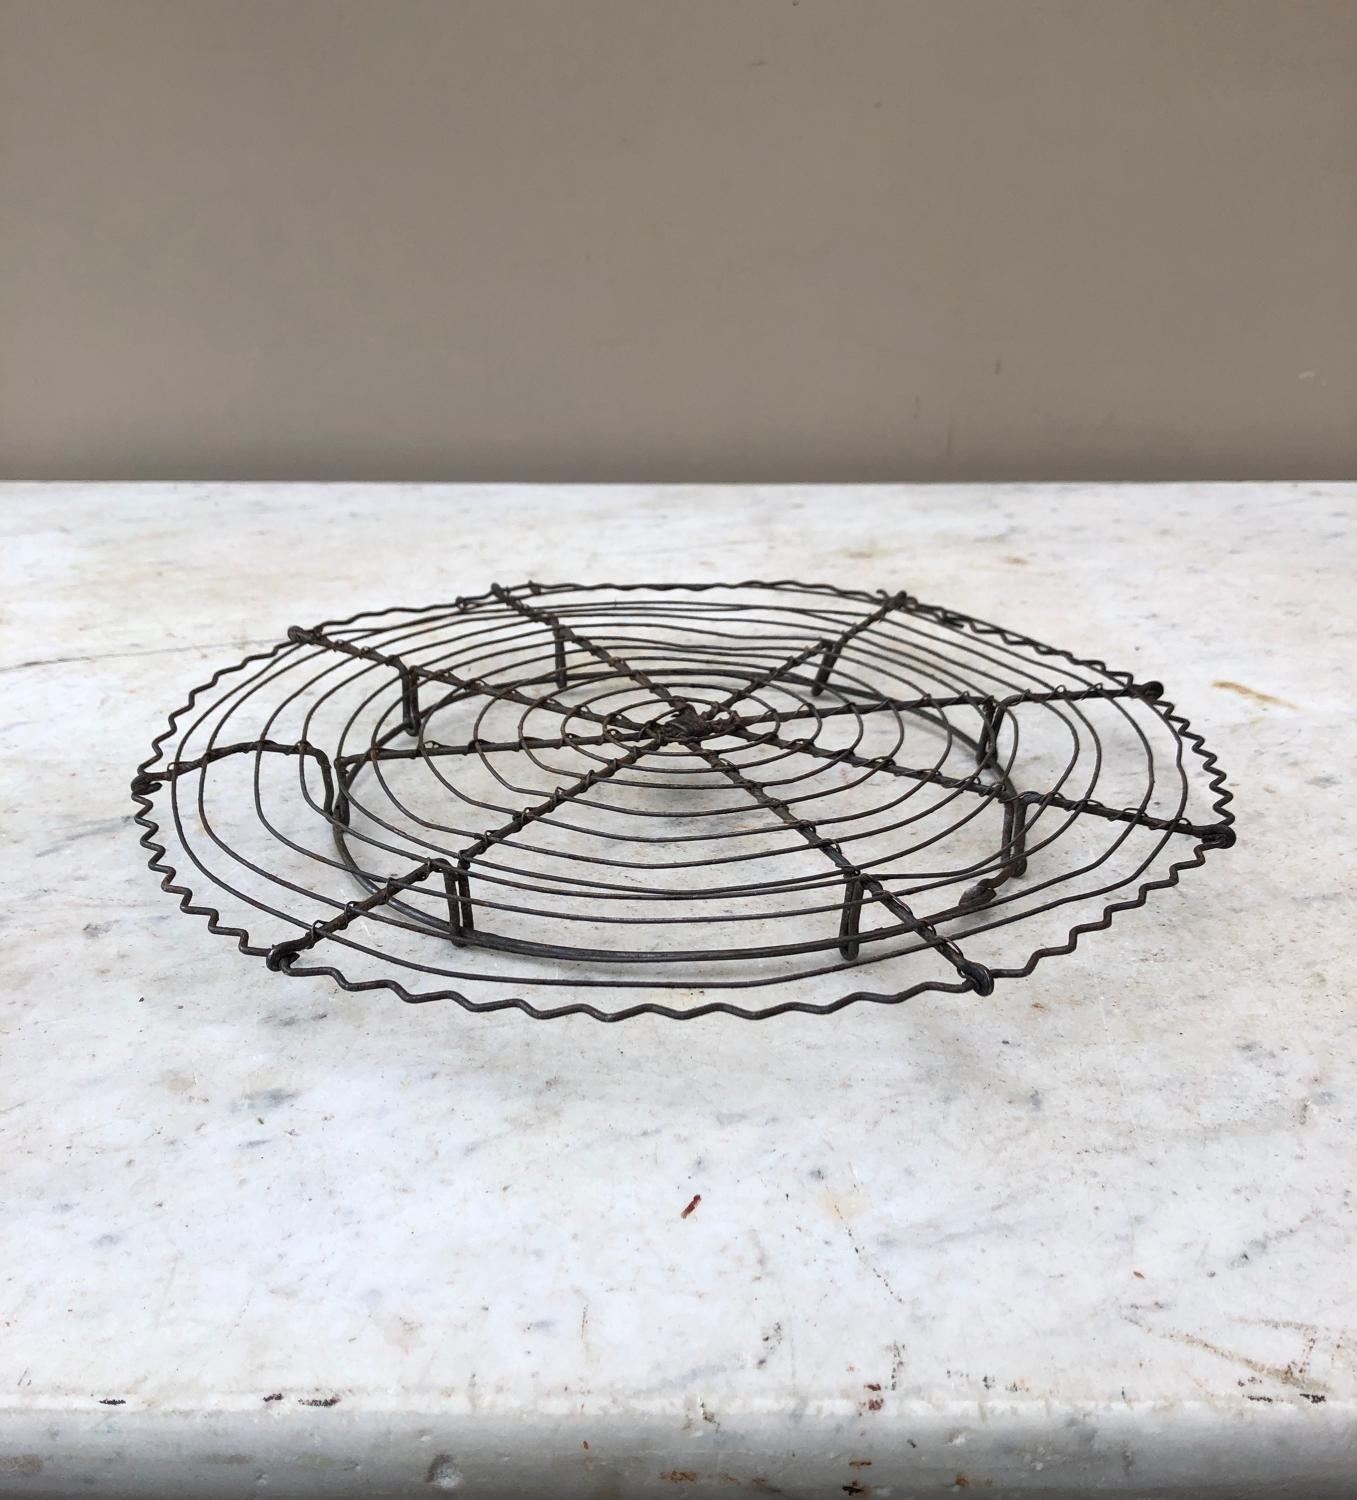 Early 20th Century Ornate Wire Work Cake Cooling Rack